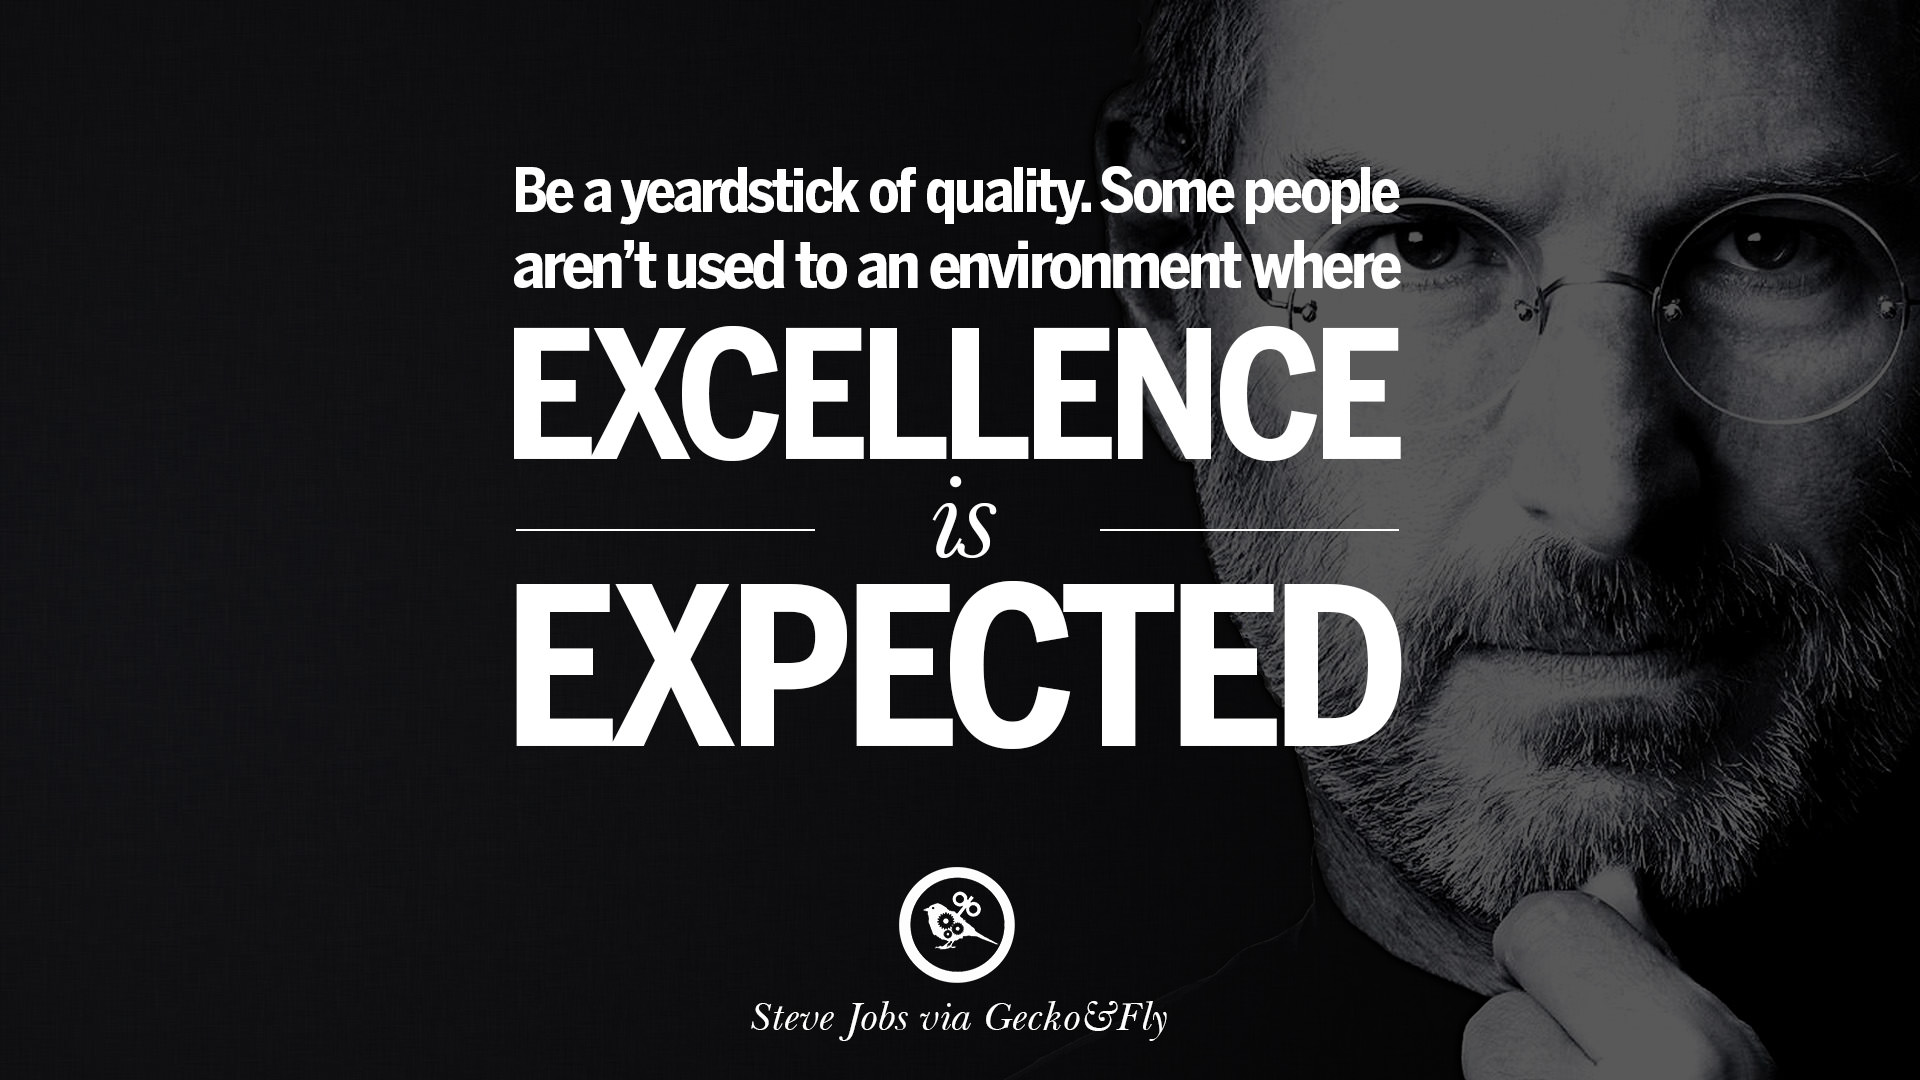 Quotes Quality 28 Memorable Quotessteven Paul 'steve' Jobs For Creative